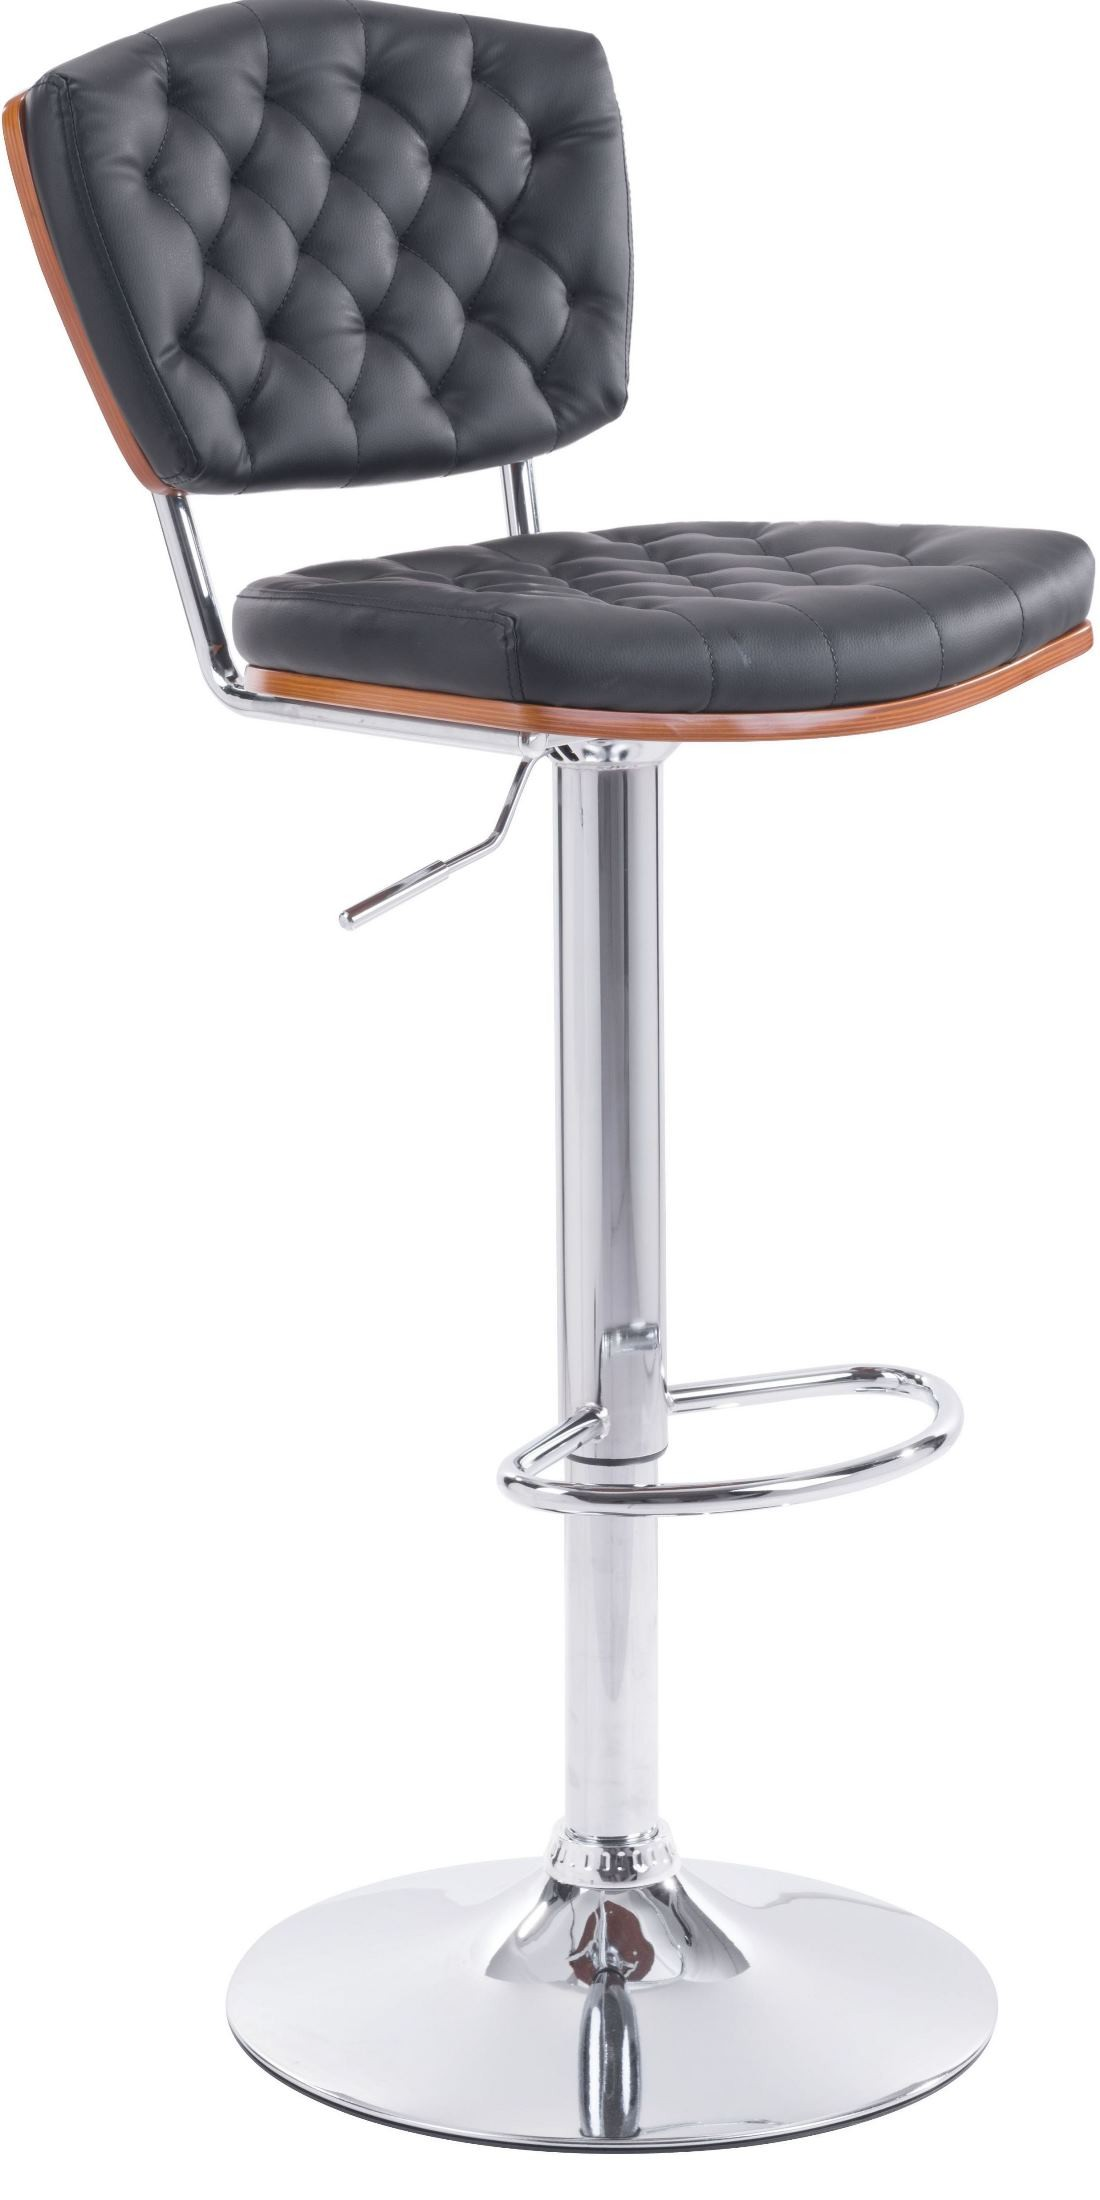 Tiger Black Bar Chair from Zuo Mod 100315 Coleman  : 100315 1 from colemanfurniture.com size 1100 x 2200 jpeg 152kB